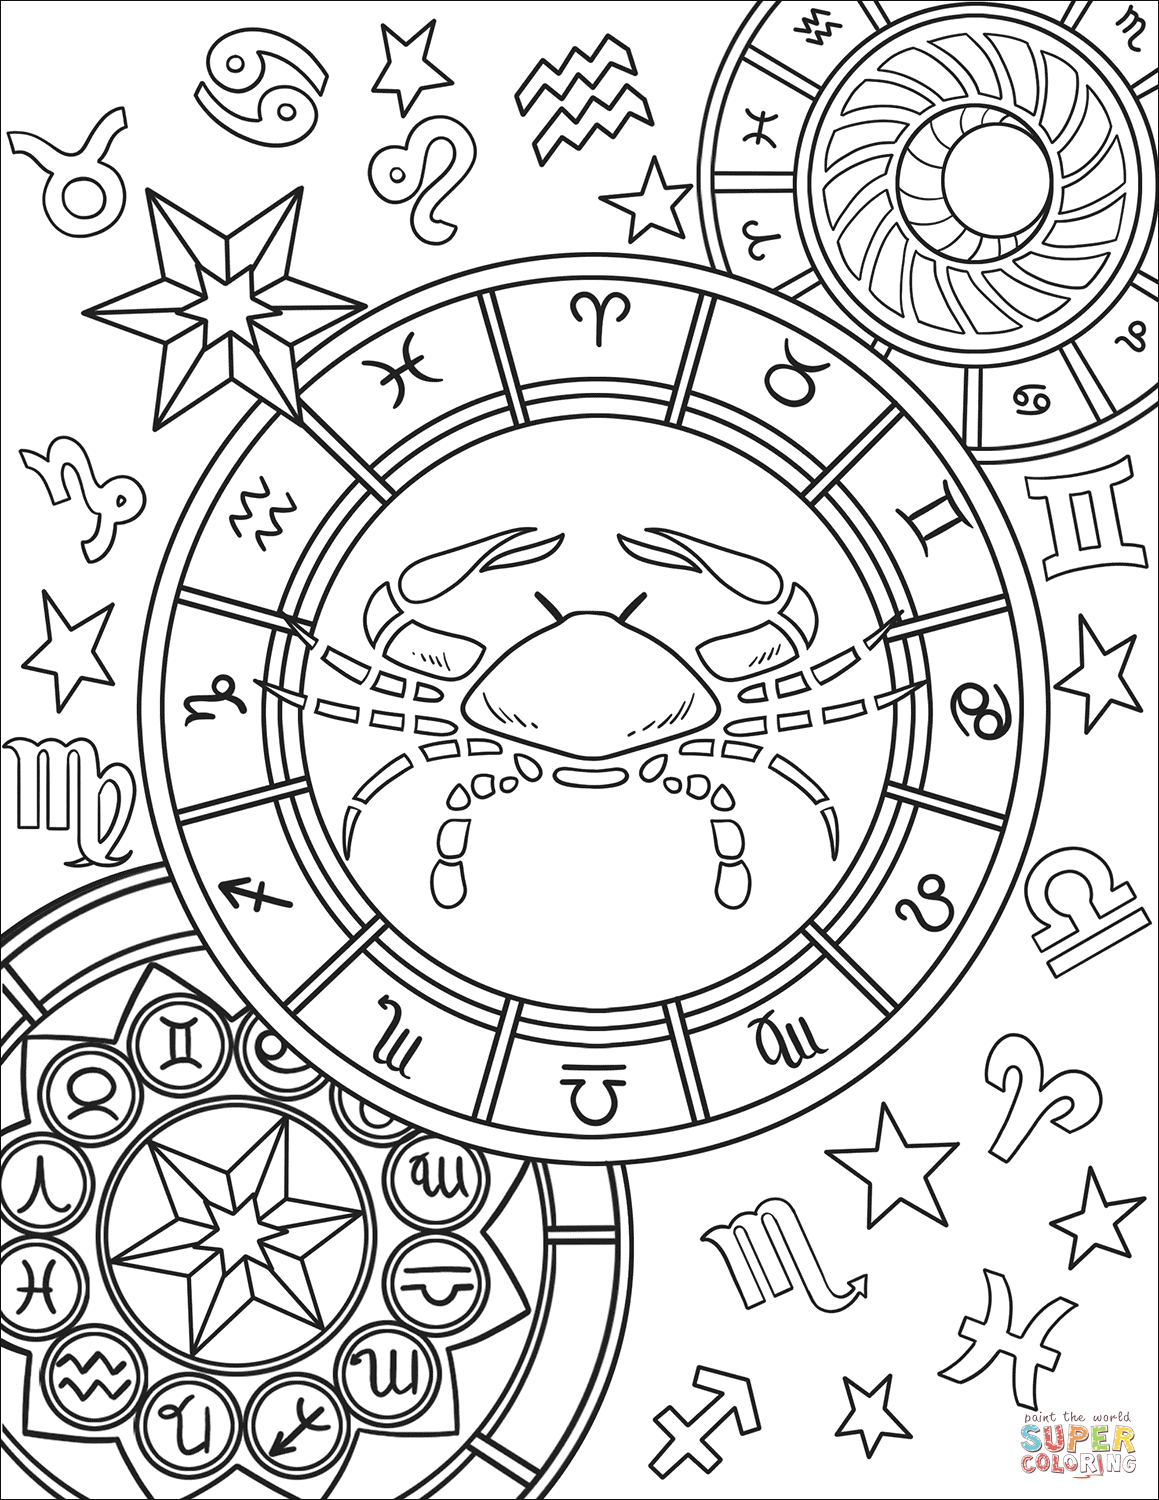 Cancer Zodiac Sign Coloring Page Free Printable Coloring Pages Zodiac Signs Cancer Printable Coloring Pages Coloring Pages